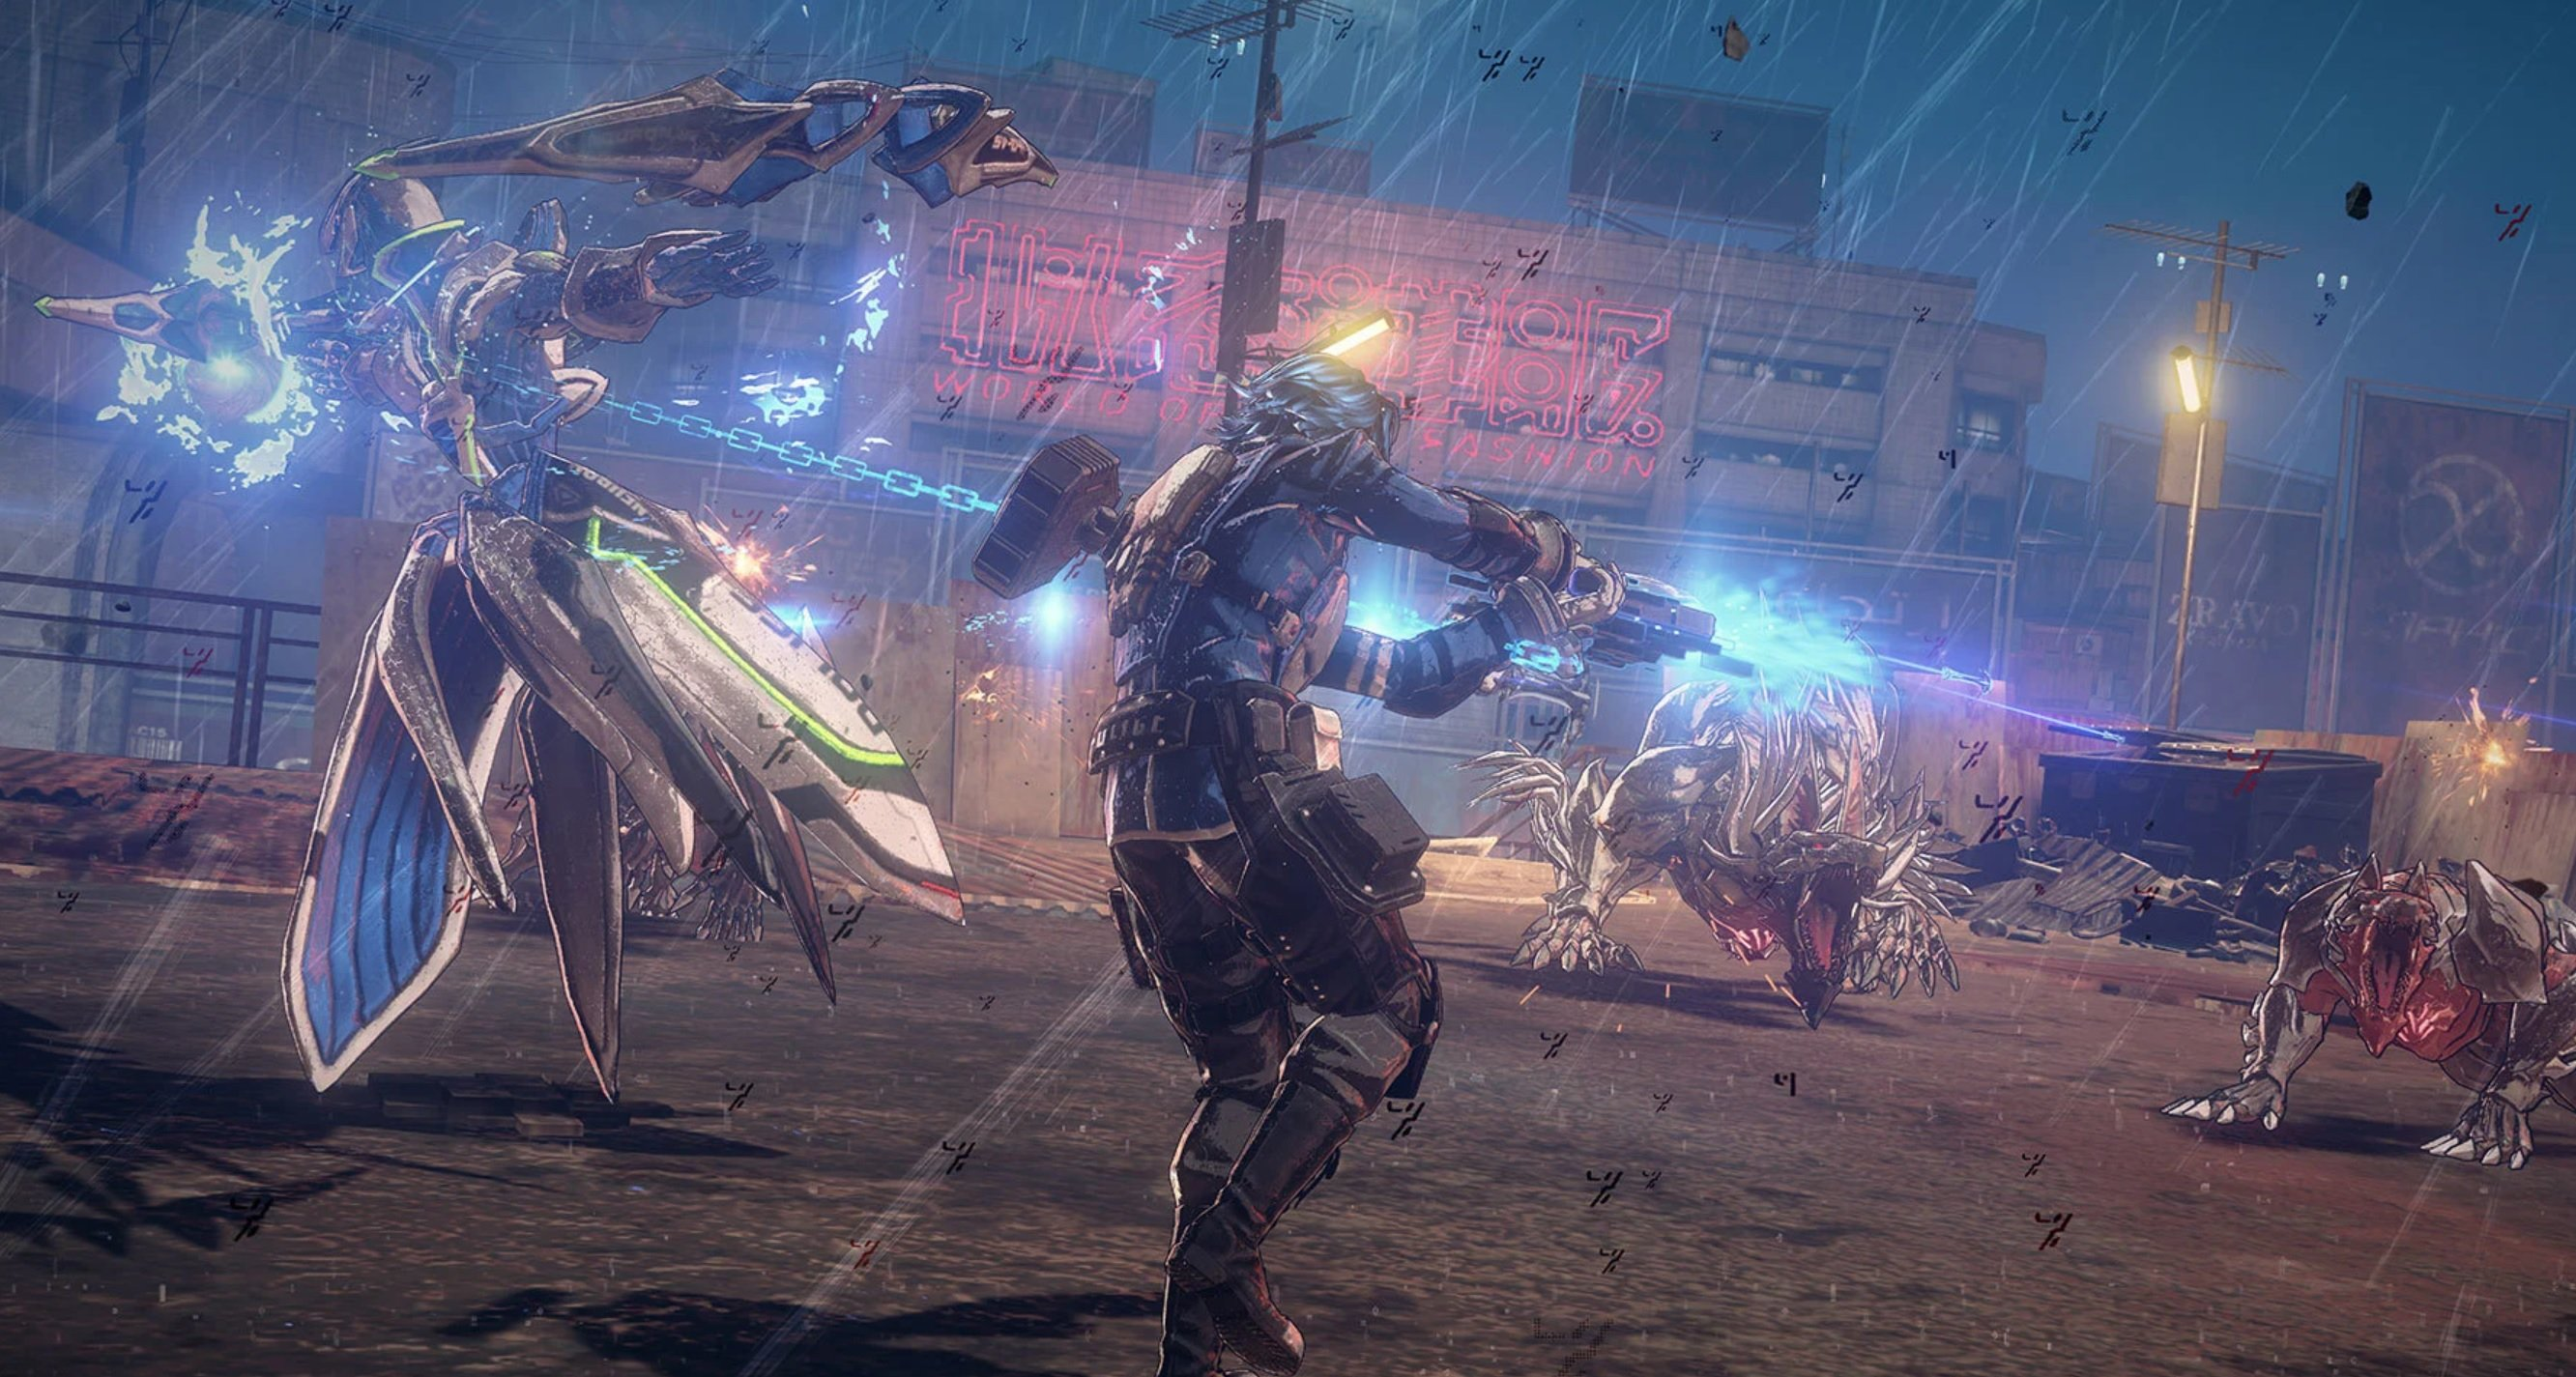 Who owns the Astral Chain IP? Nintendo, says Platinum screenshot